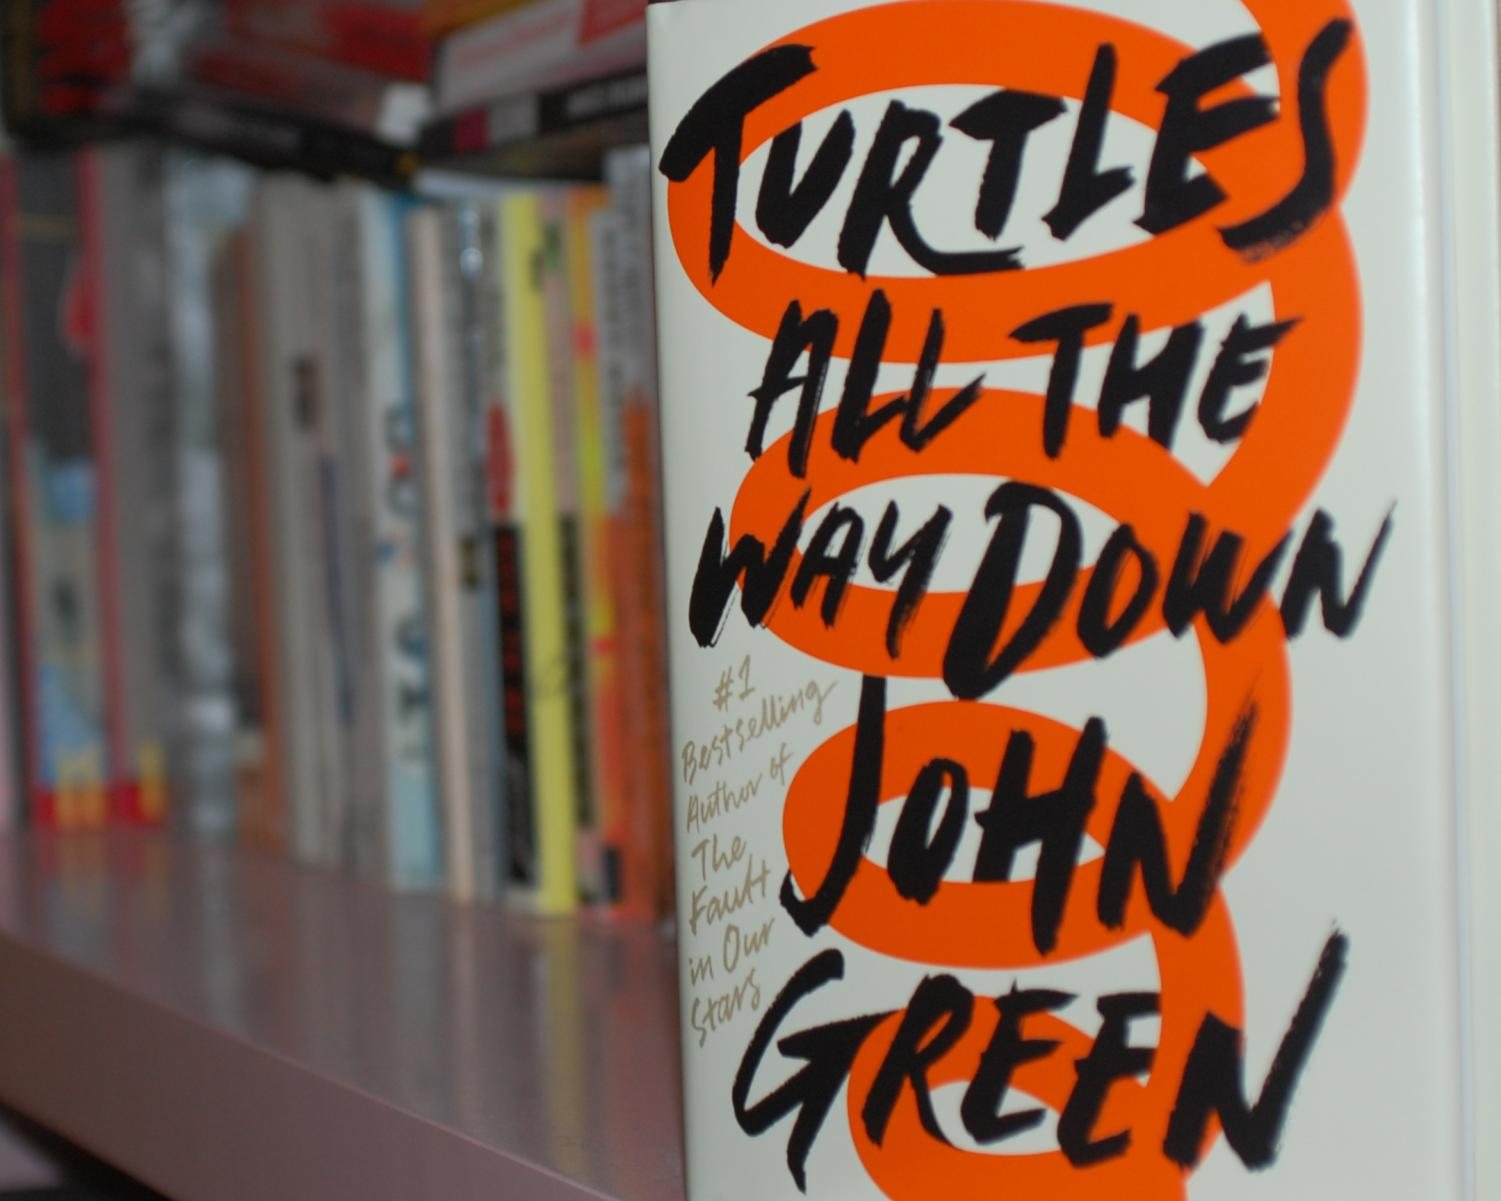 Turtles All the Way Down by John Green.